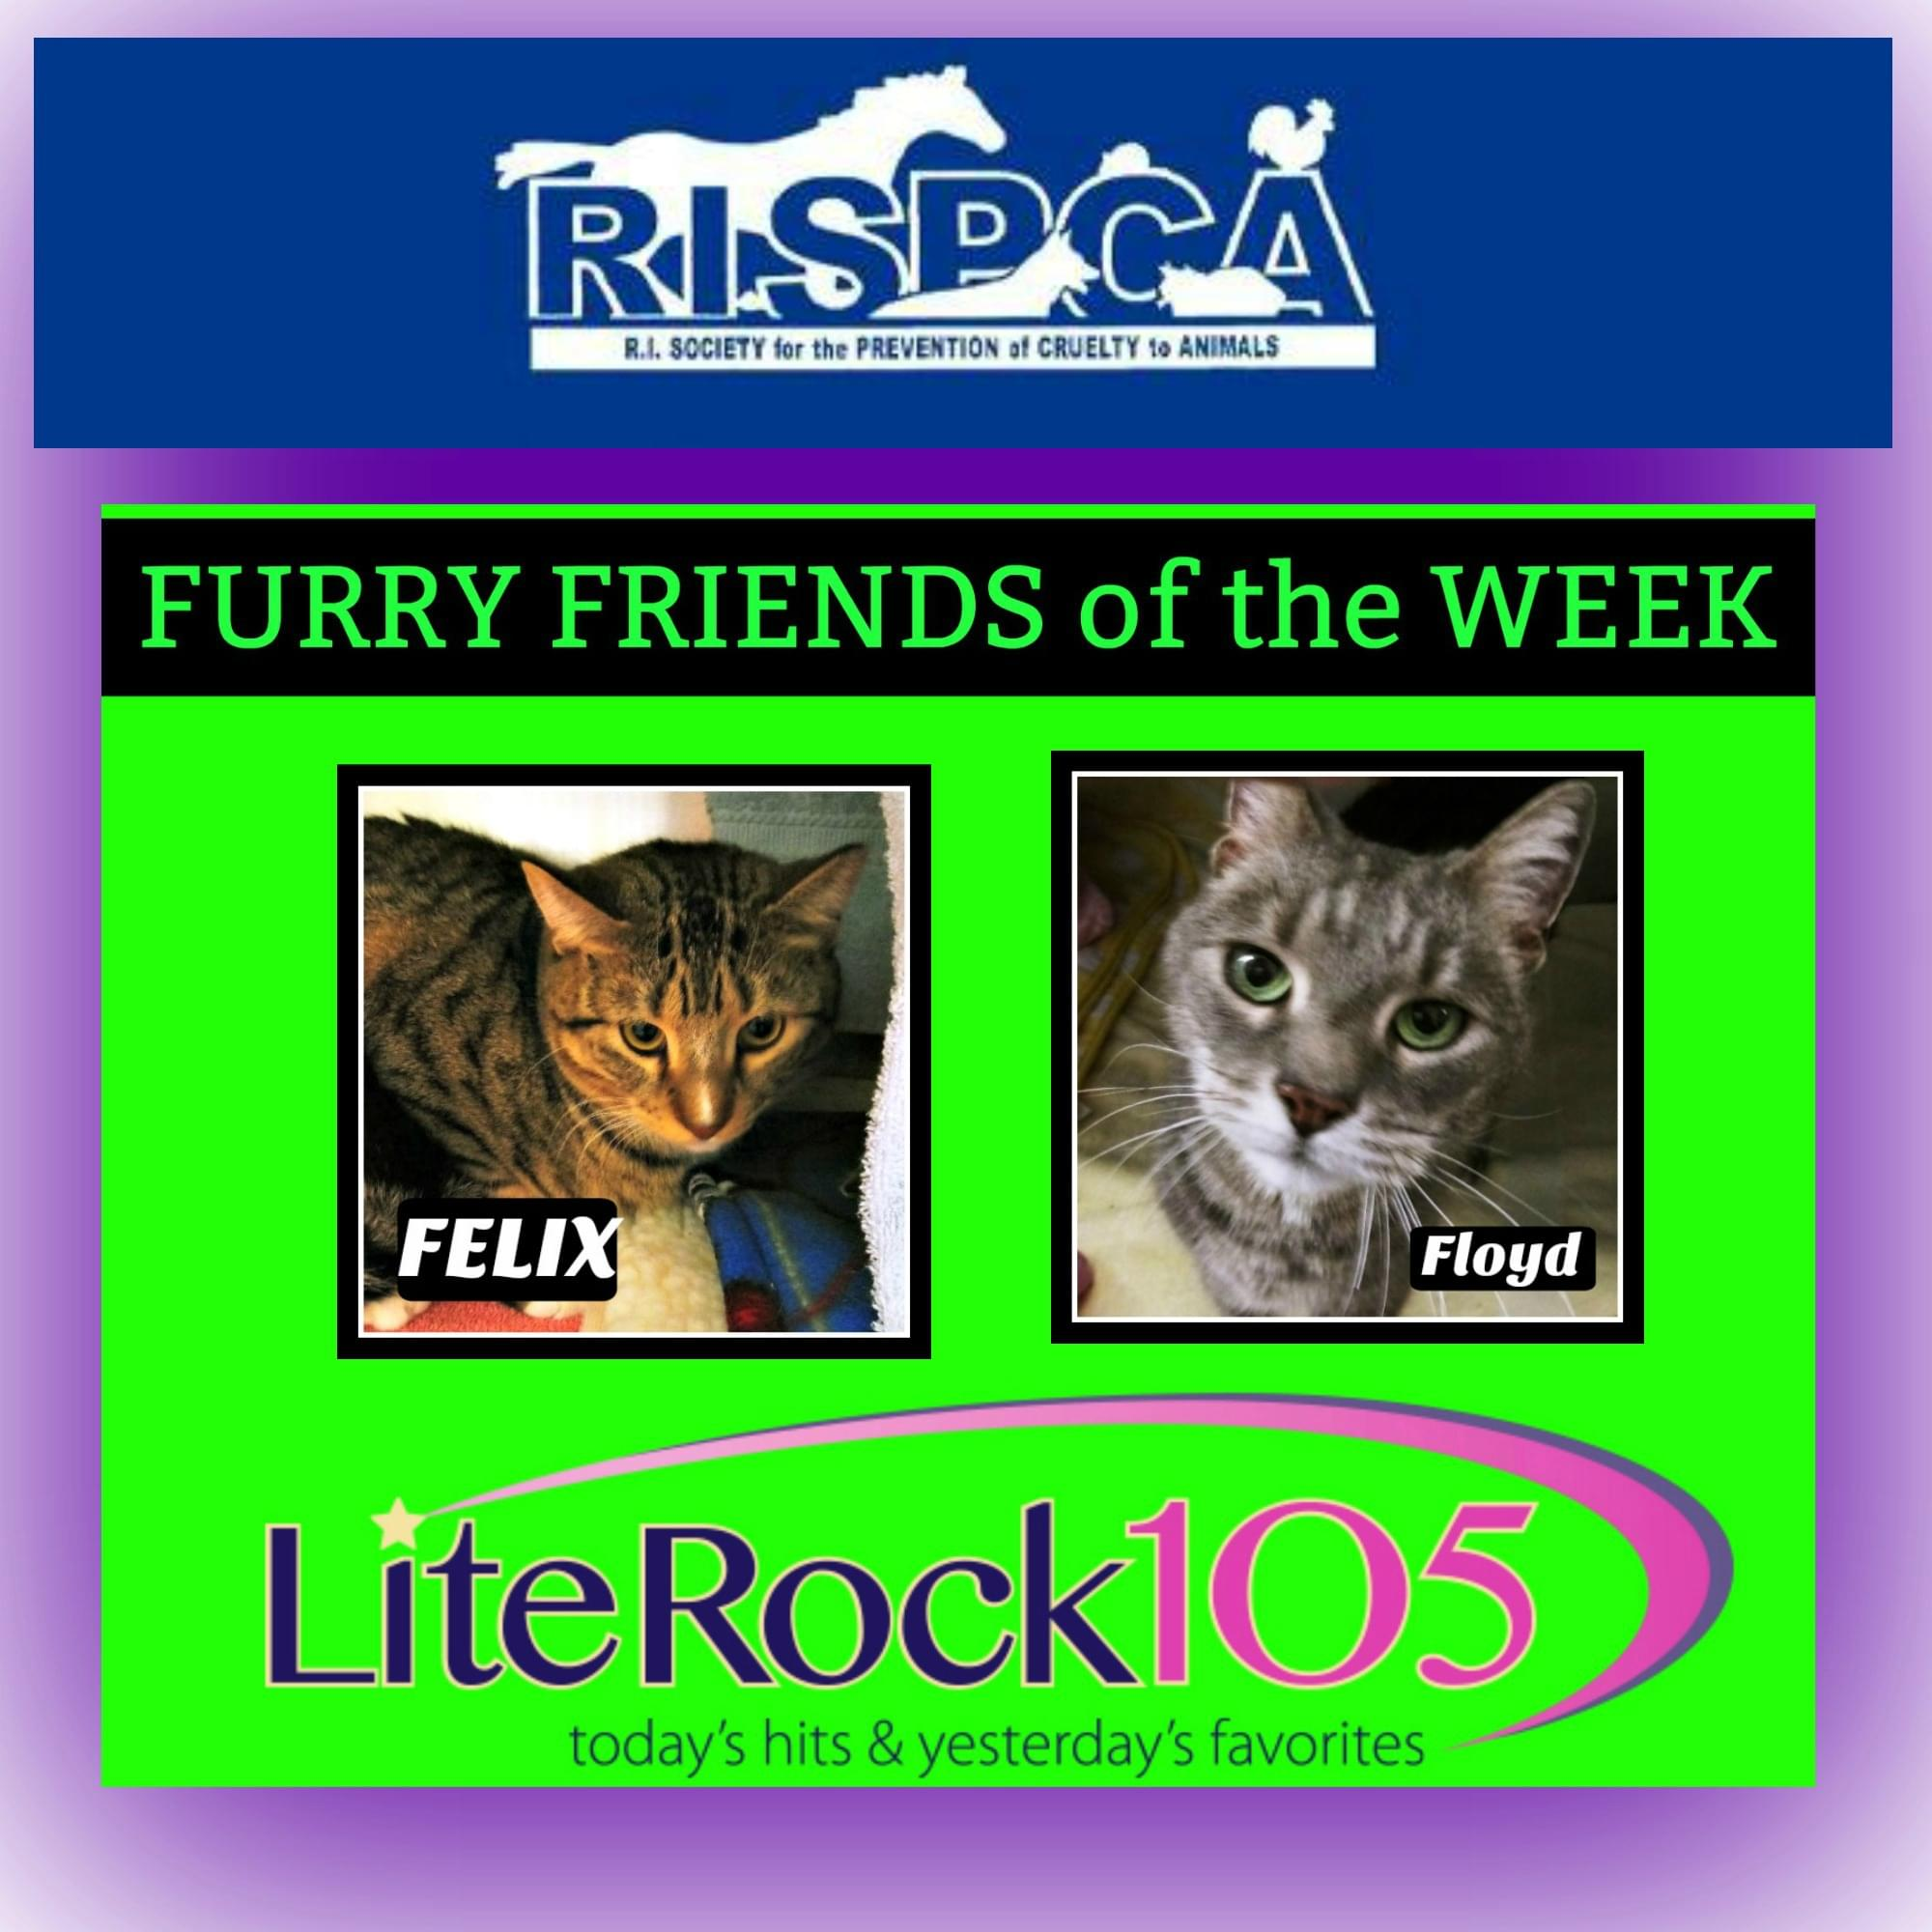 Our FURRY FRIENDS of the WEEK: 2 Cats! Felix & Floyd! (3/12/19)